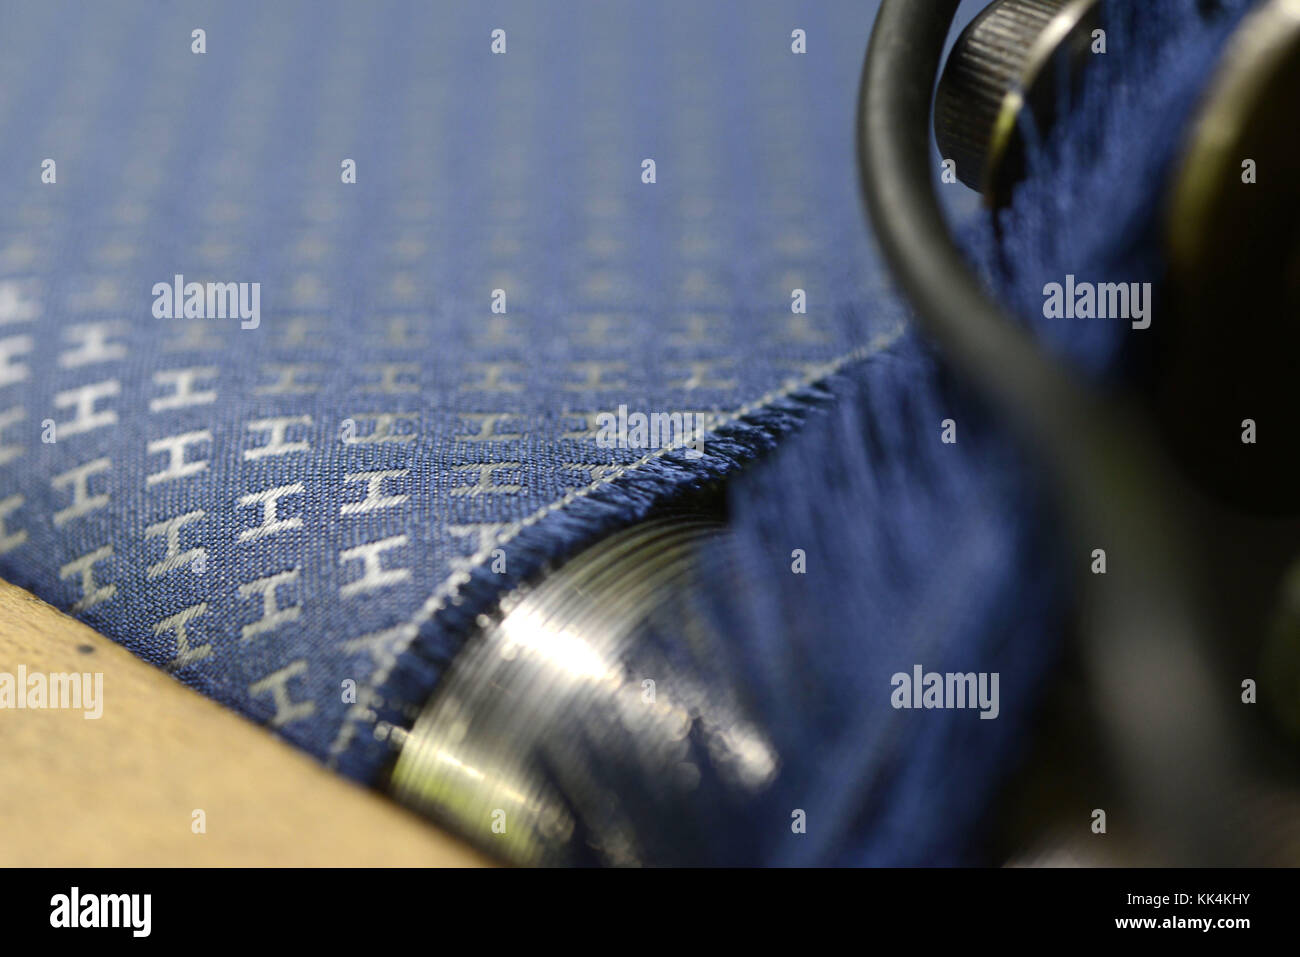 Bussieres (central-eastern France): fabric that will be used to make Hermes ties in the premises of the weaving - Stock Image